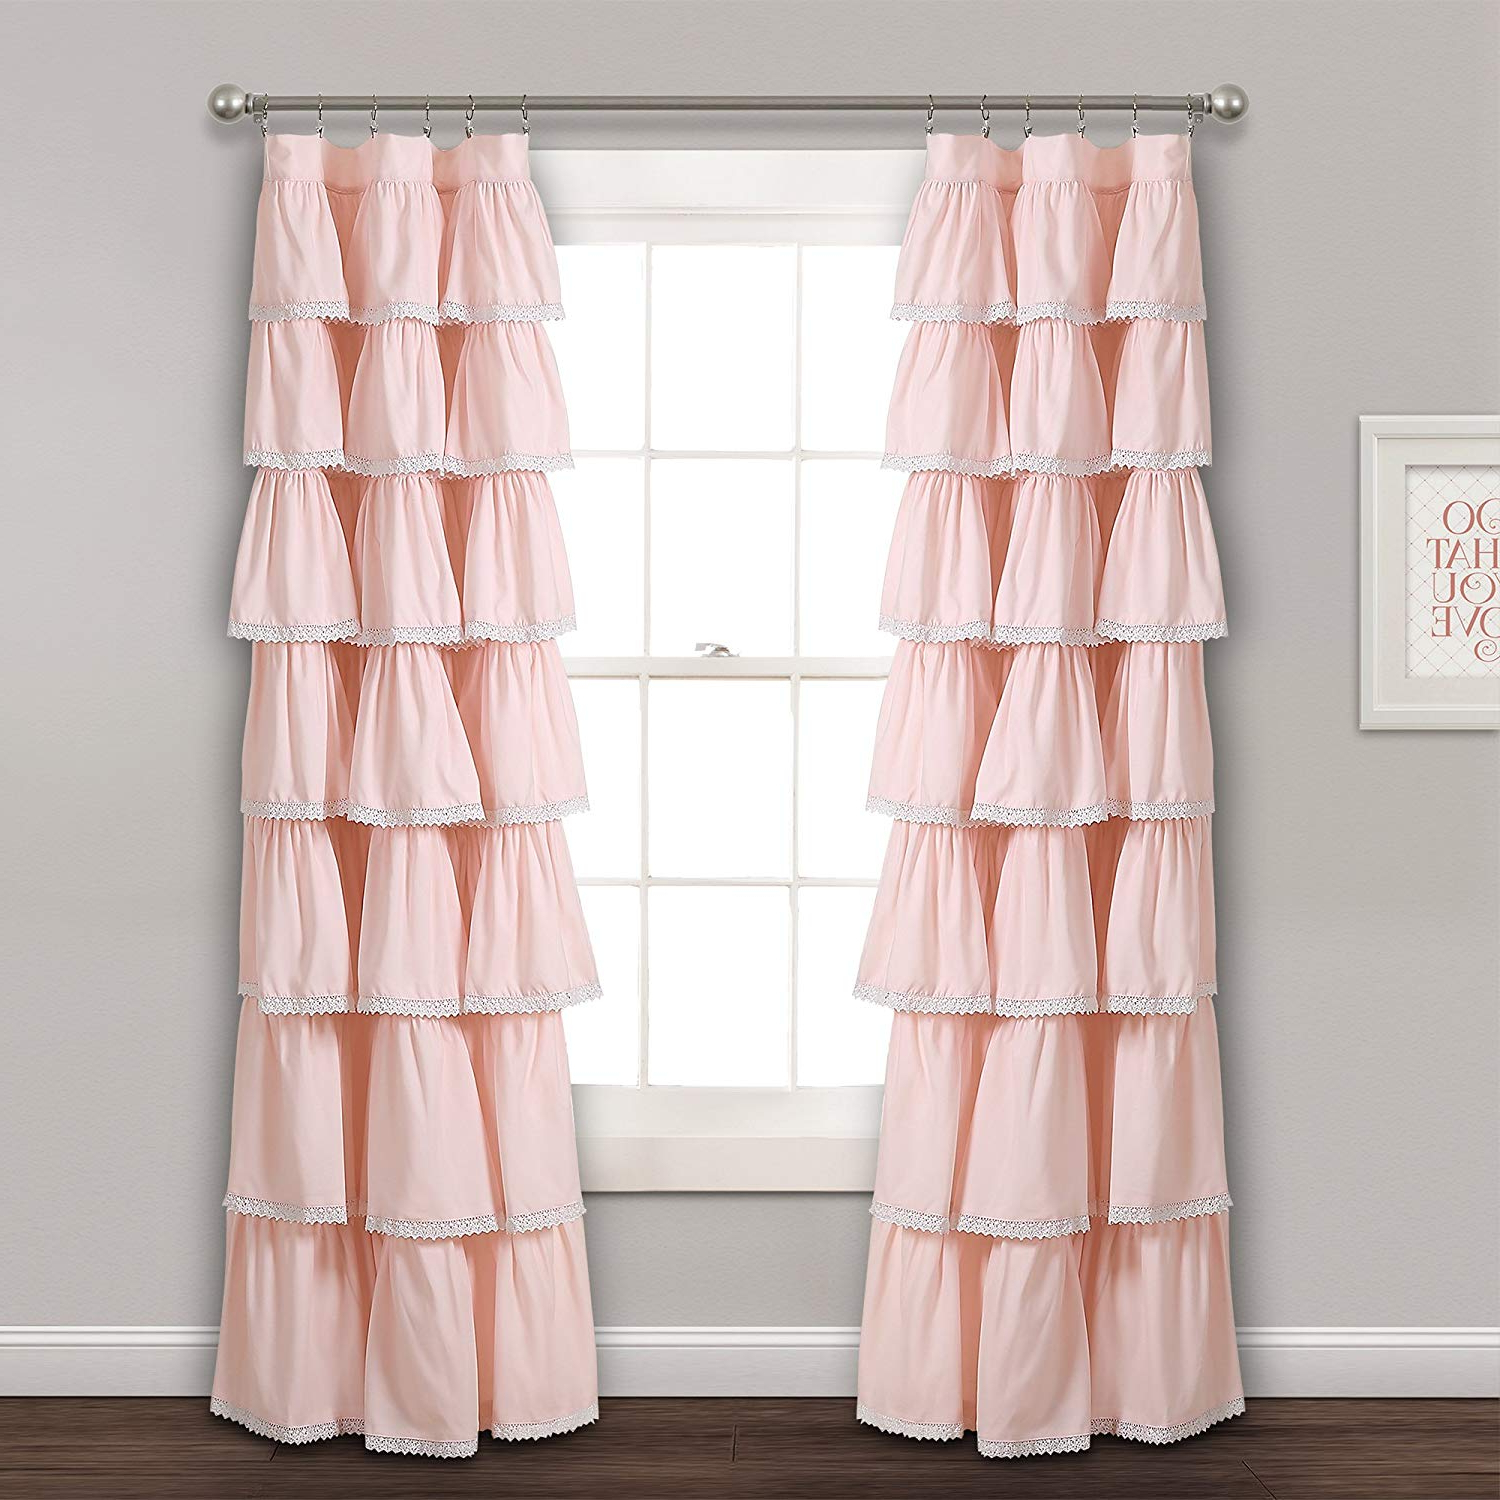 "Recent Lydia Ruffle Window Curtain Panel Pairs With Regard To Lush Decor Lace Ruffle Window, 84"" X 52"", Blush Curtain Panel, (View 11 of 20)"